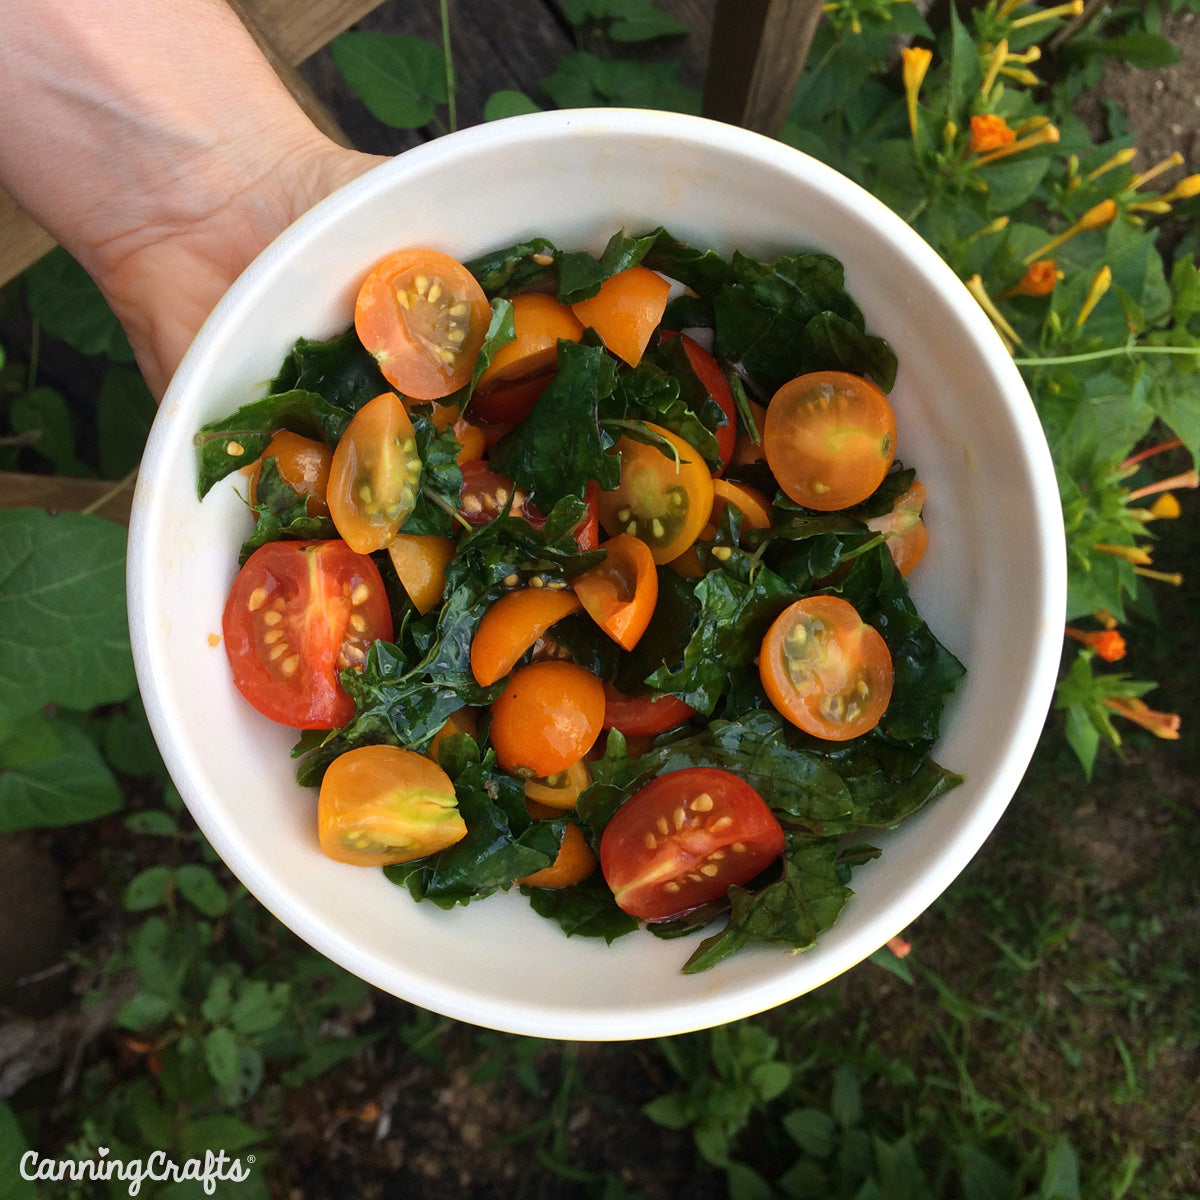 CanningCrafts.com Sungold Tomato & Kale Salad